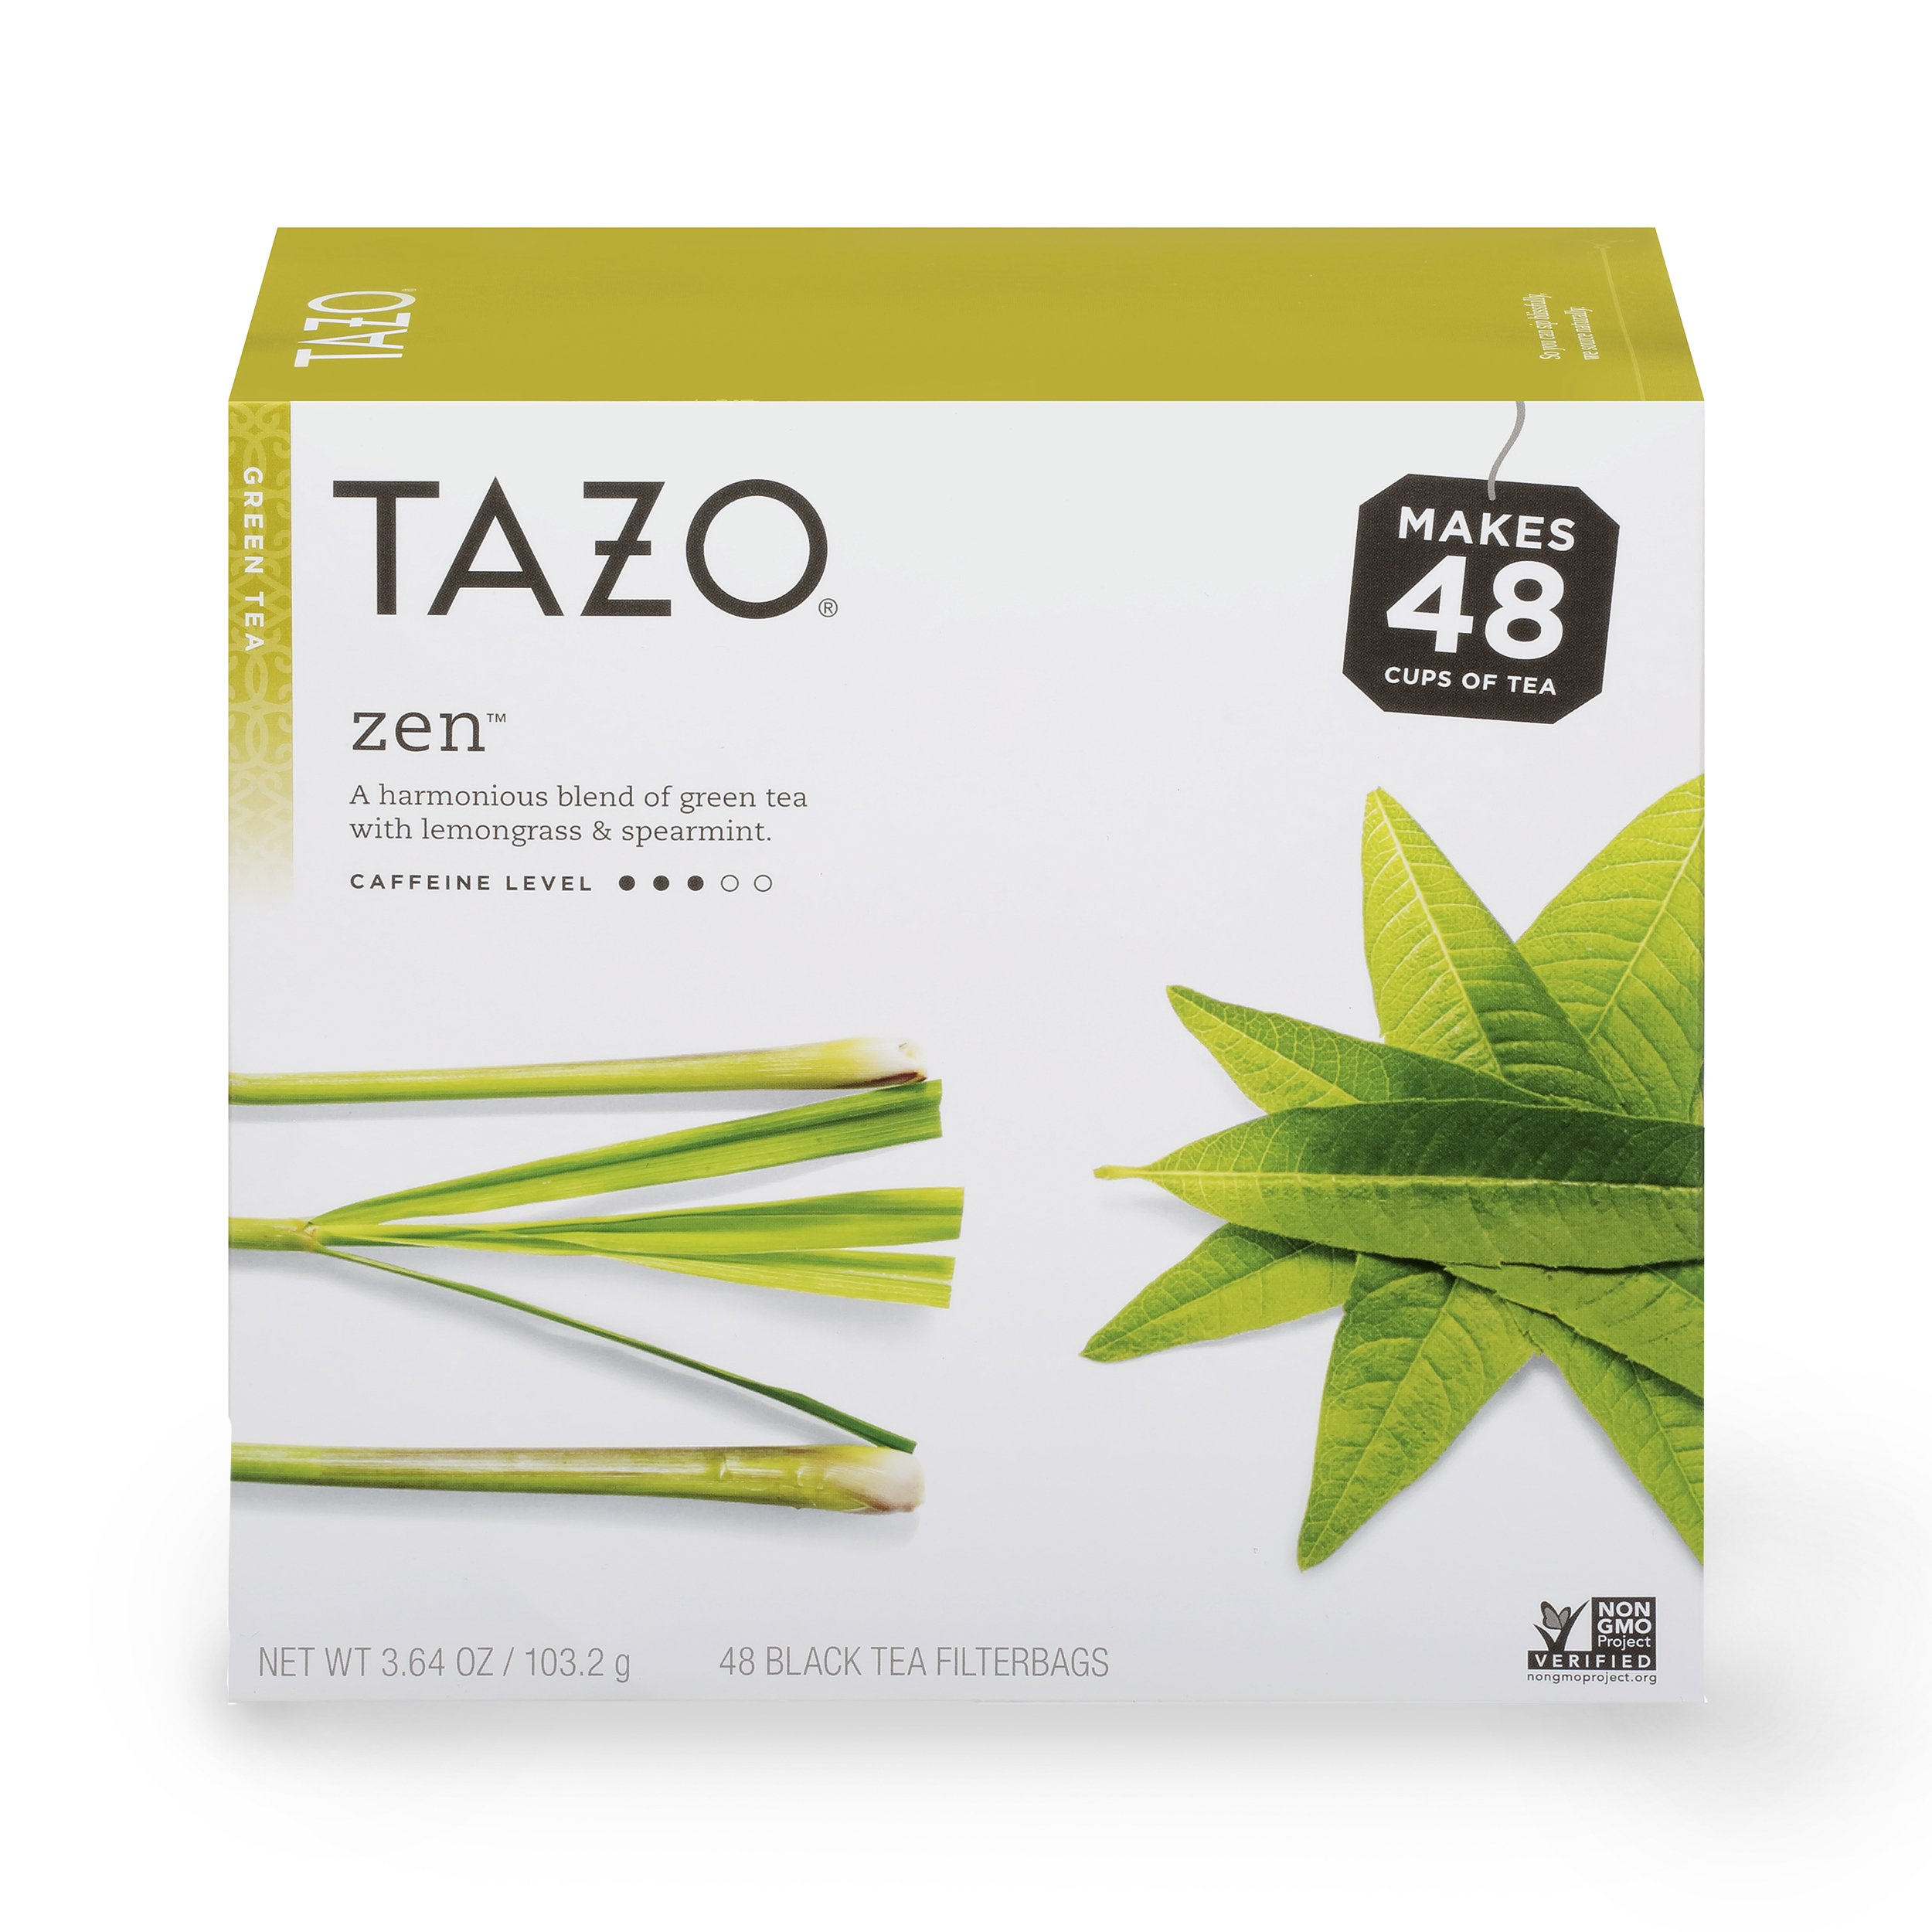 Tazo Zen Green Tea Filterbags 48 ct, Pack of 4